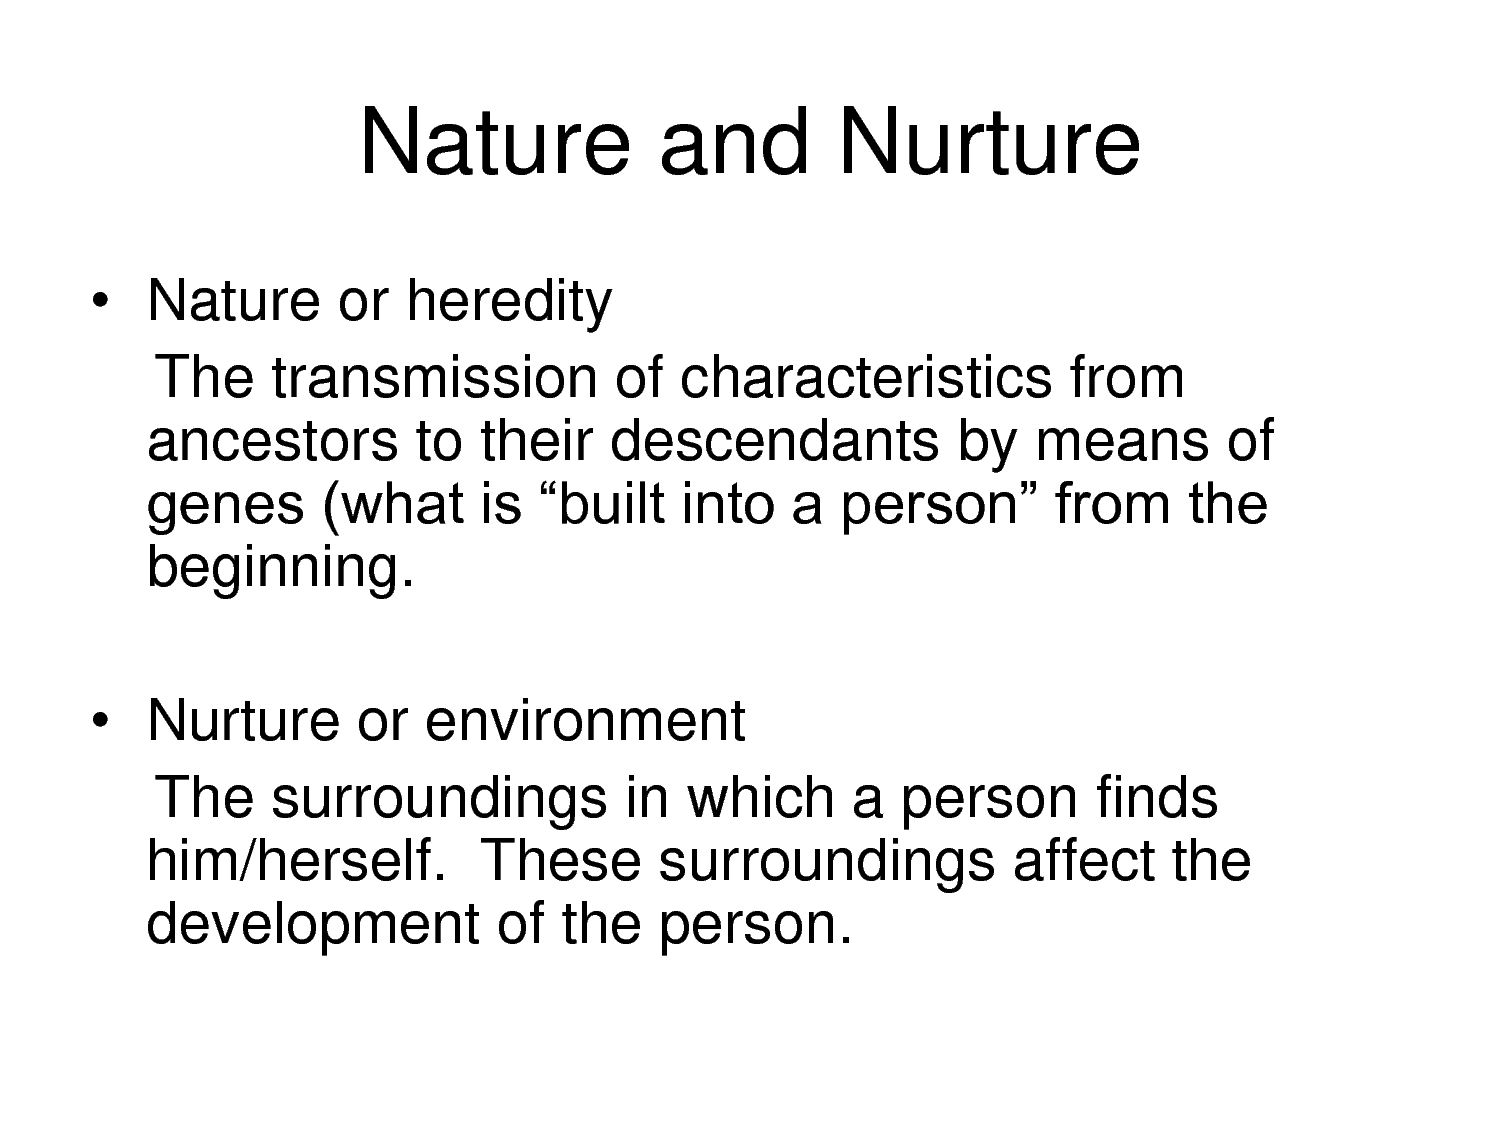 essays on nature vs nurture Essays on nature vs nurture essays on nature vs nurture nature vs nurture your physical features can be identified as identical to that of your parents, like your.